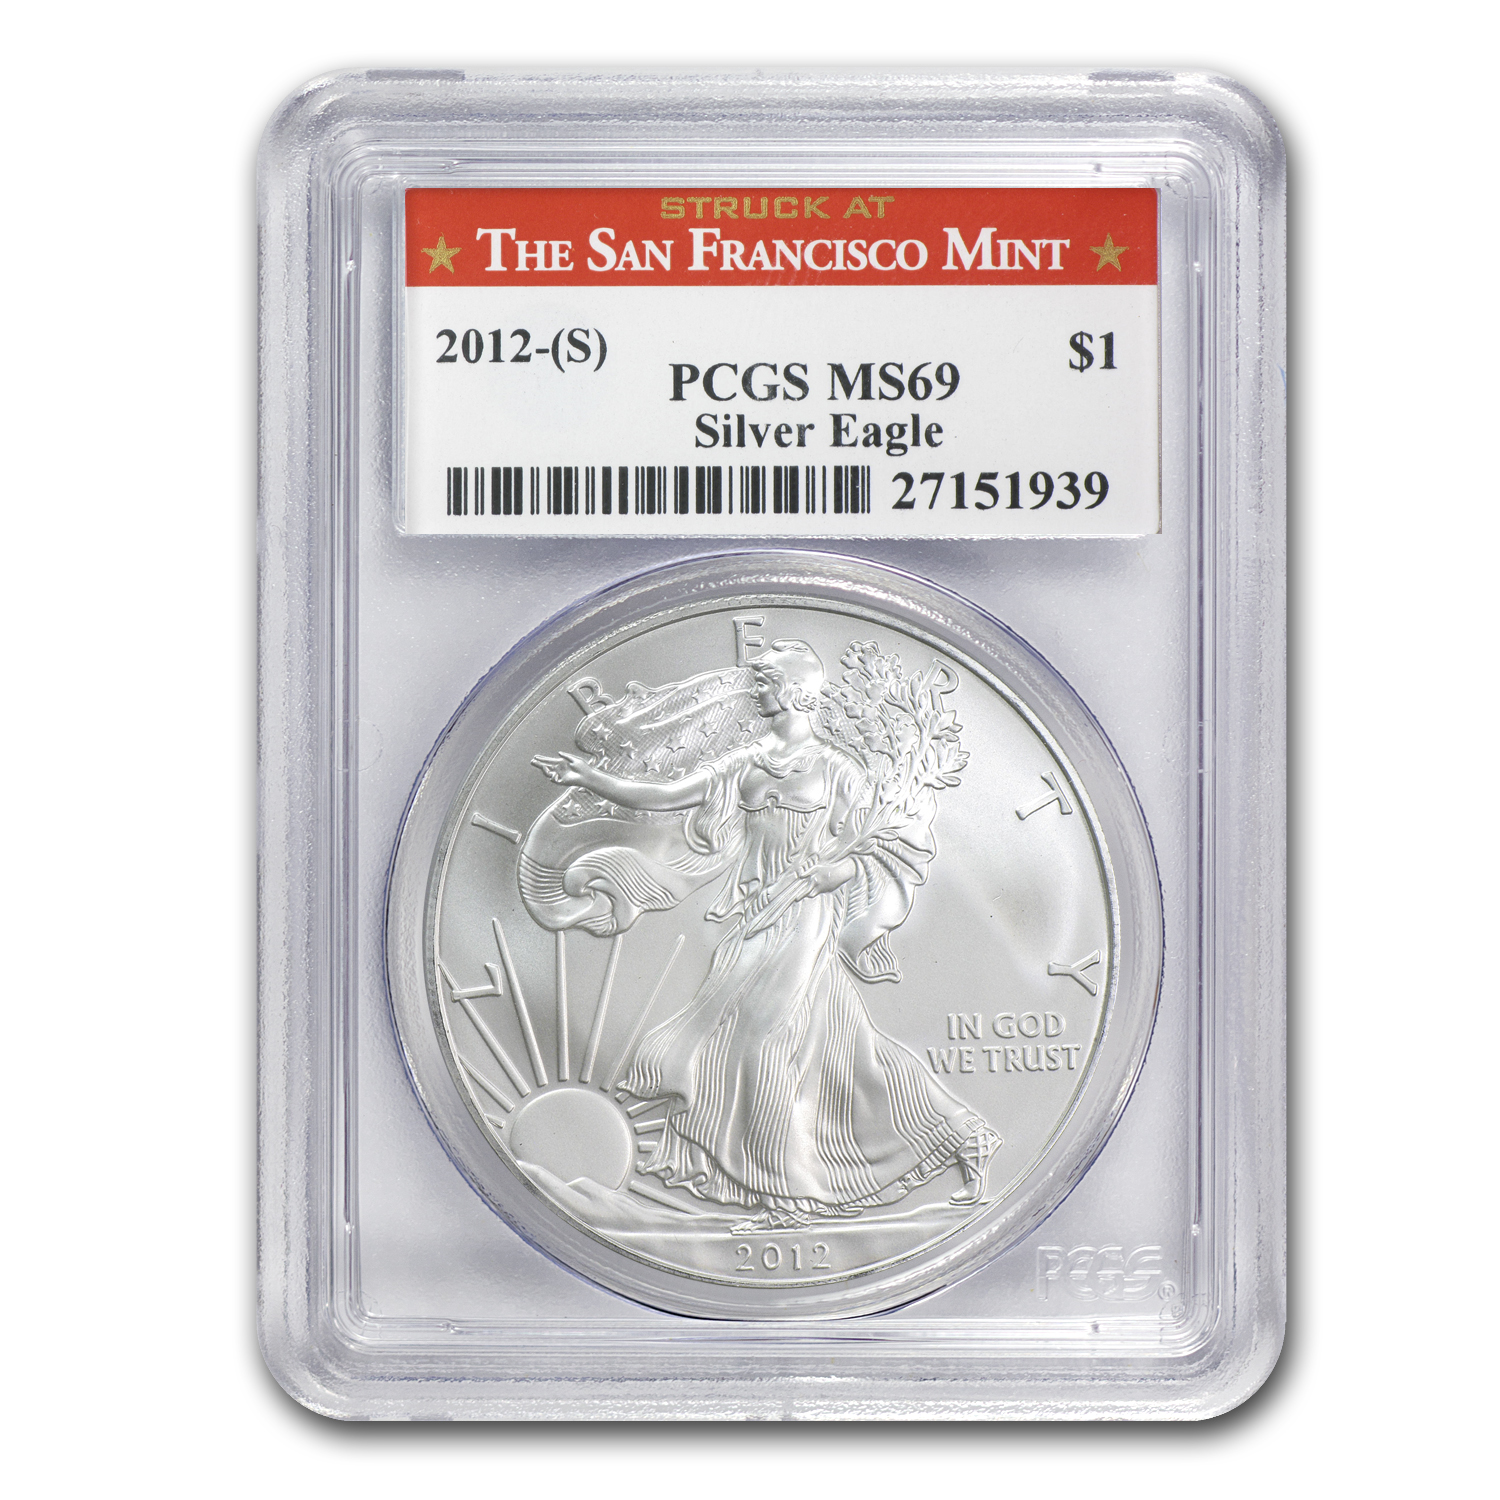 2012 (S) Silver American Eagle - MS-69 PCGS - Red Label